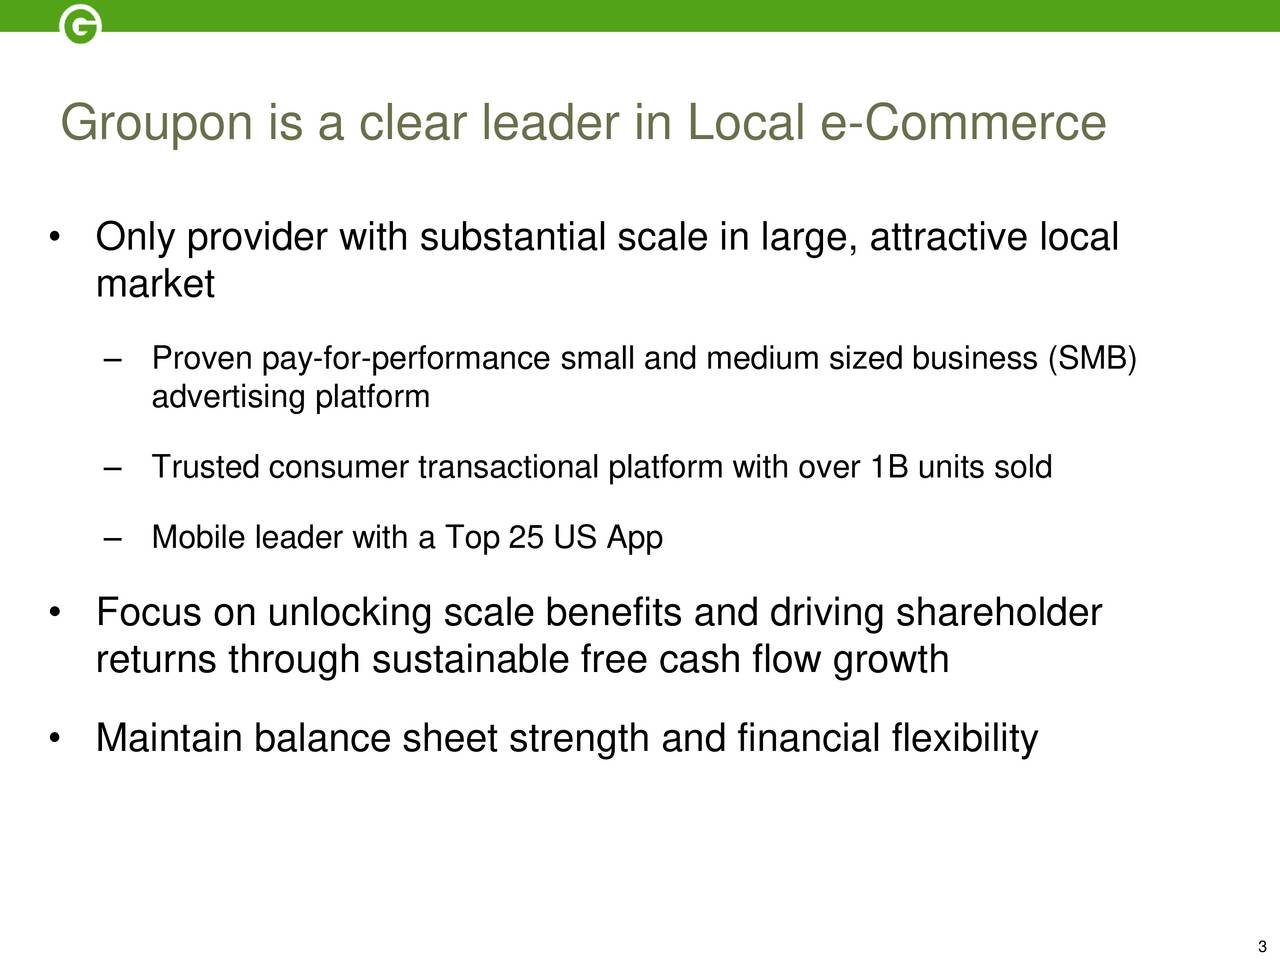 Only provider with substantial scale in large, attractive local market Proven pay-for-performance small and medium sized business (SMB) advertising platform Trusted consumer transactional platform with over 1B units sold Mobile leader with a Top 25 US App Focus on unlocking scale benefits and driving shareholder returns through sustainable free cash flow growth Maintain balance sheet strength and financial flexibility